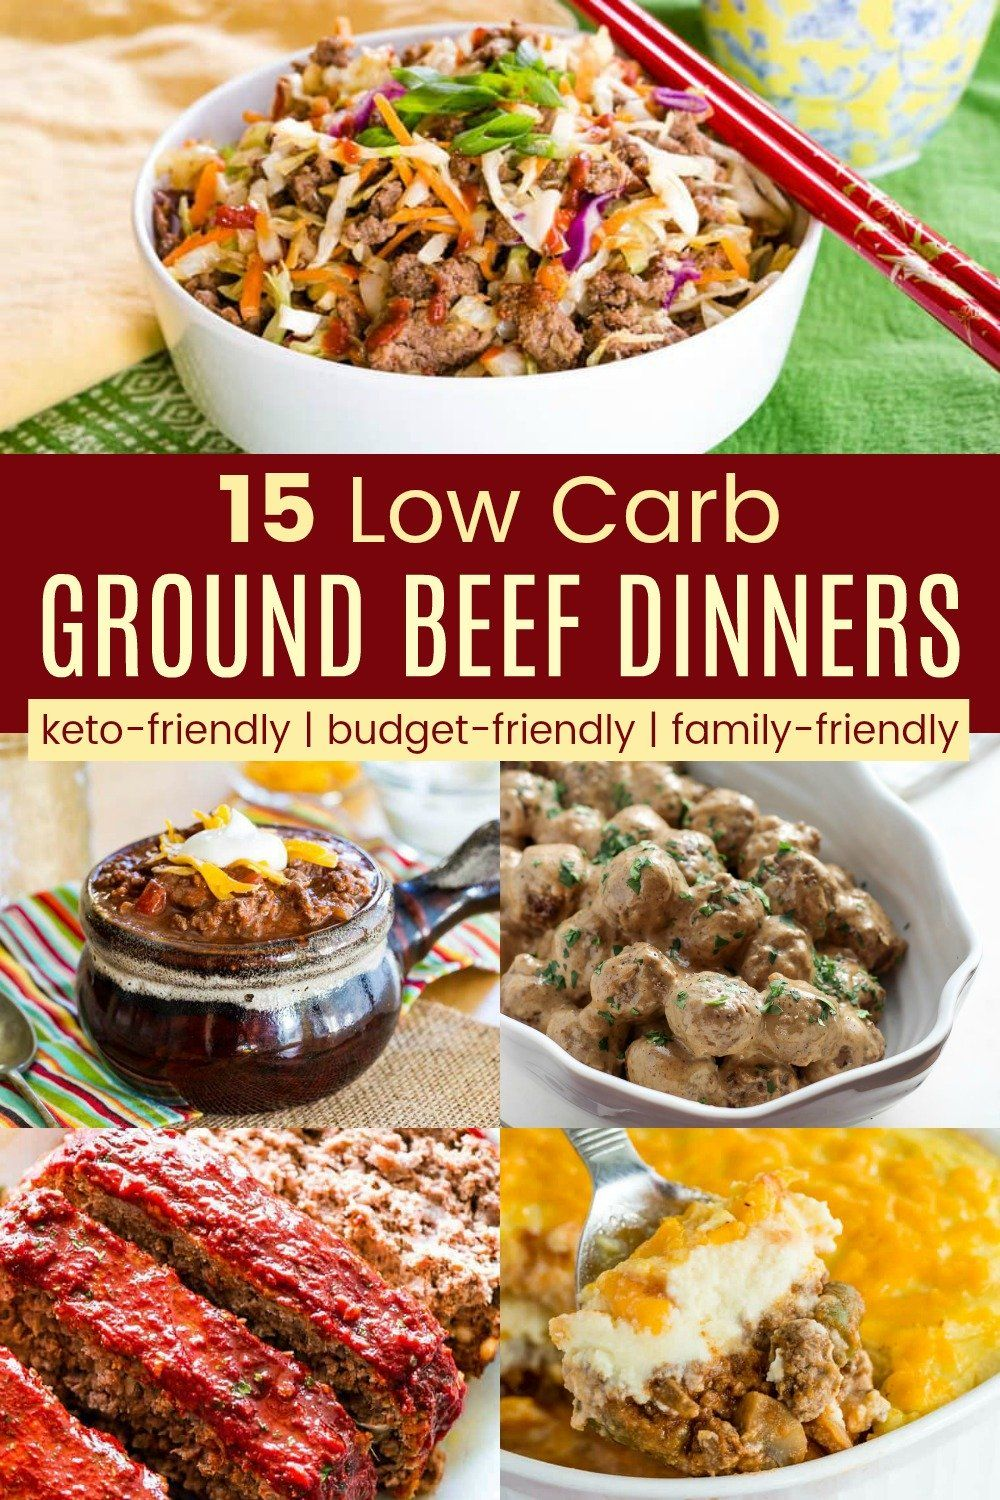 15 Best Low Carb Ground Beef Dinner Recipes Easy Ground Beef Meal Ideas In 2020 Dinner With Ground Beef Beef Dinner Beef Recipes For Dinner